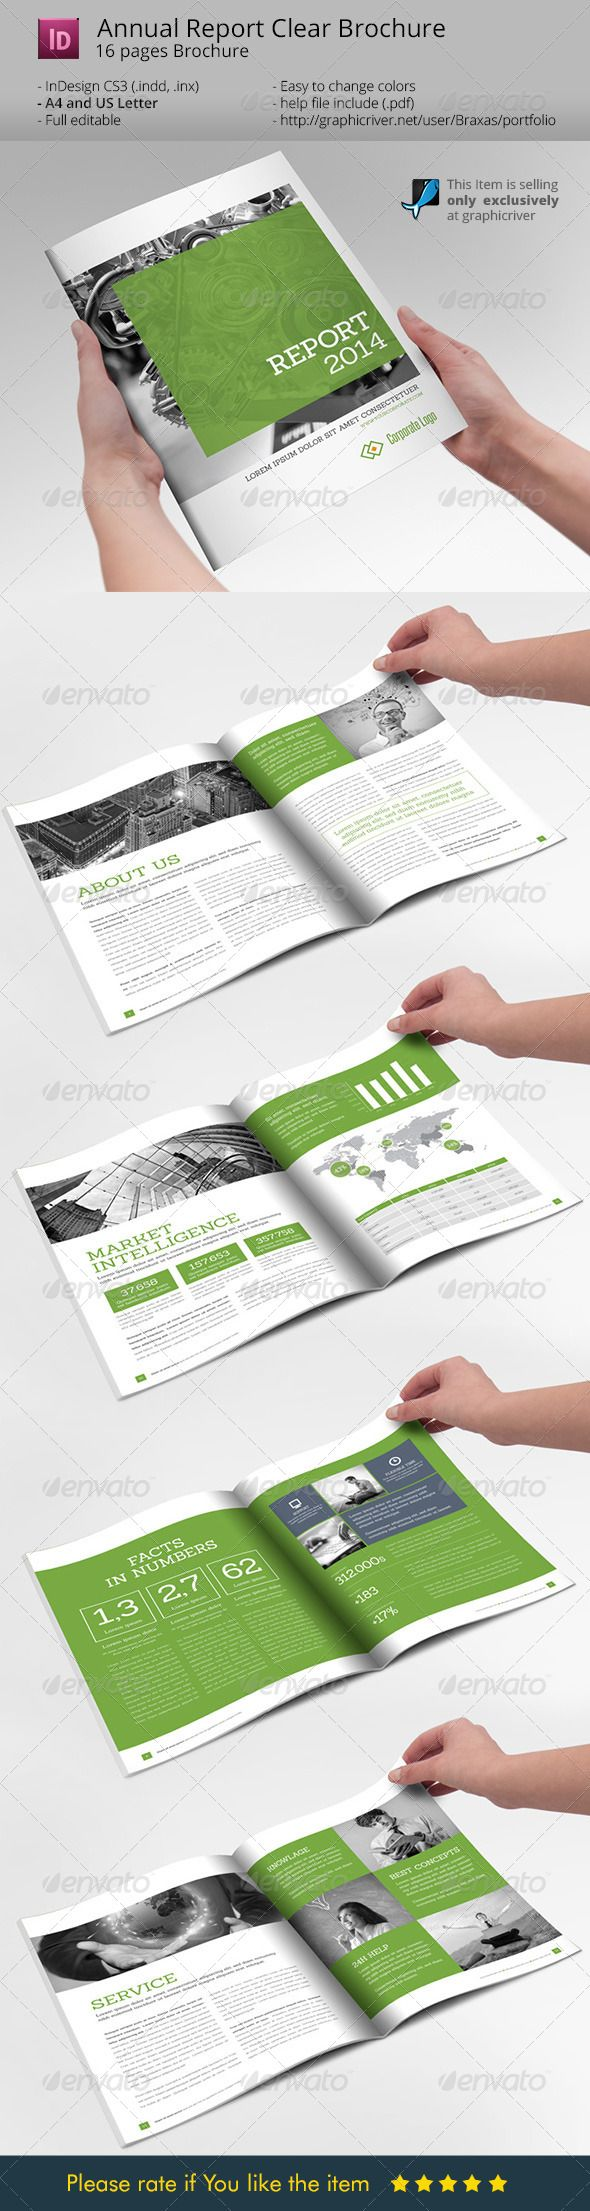 Annual Report Clean Indesign Brochure | DONWLOAD http://graphicriver.net/item/annual-report-clean-indesign-brochure/7520578?ref=sinzo